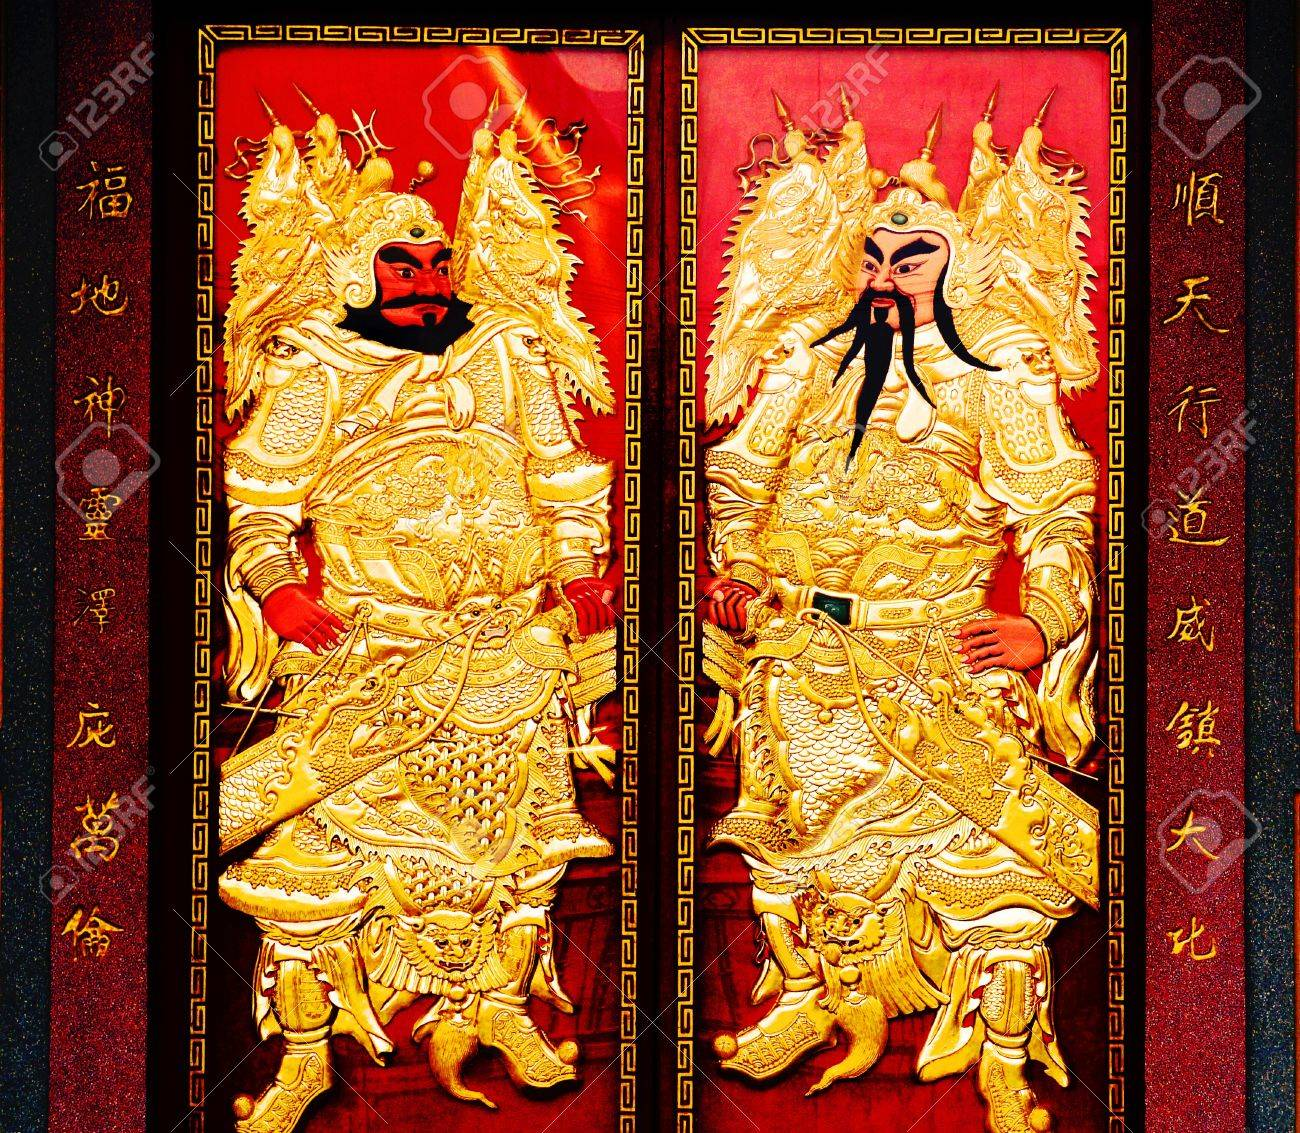 golden gates chinese door god Stock Photo - 12943828  sc 1 st  123RF.com & Golden Gates Chinese Door God Stock Photo Picture And Royalty Free ...